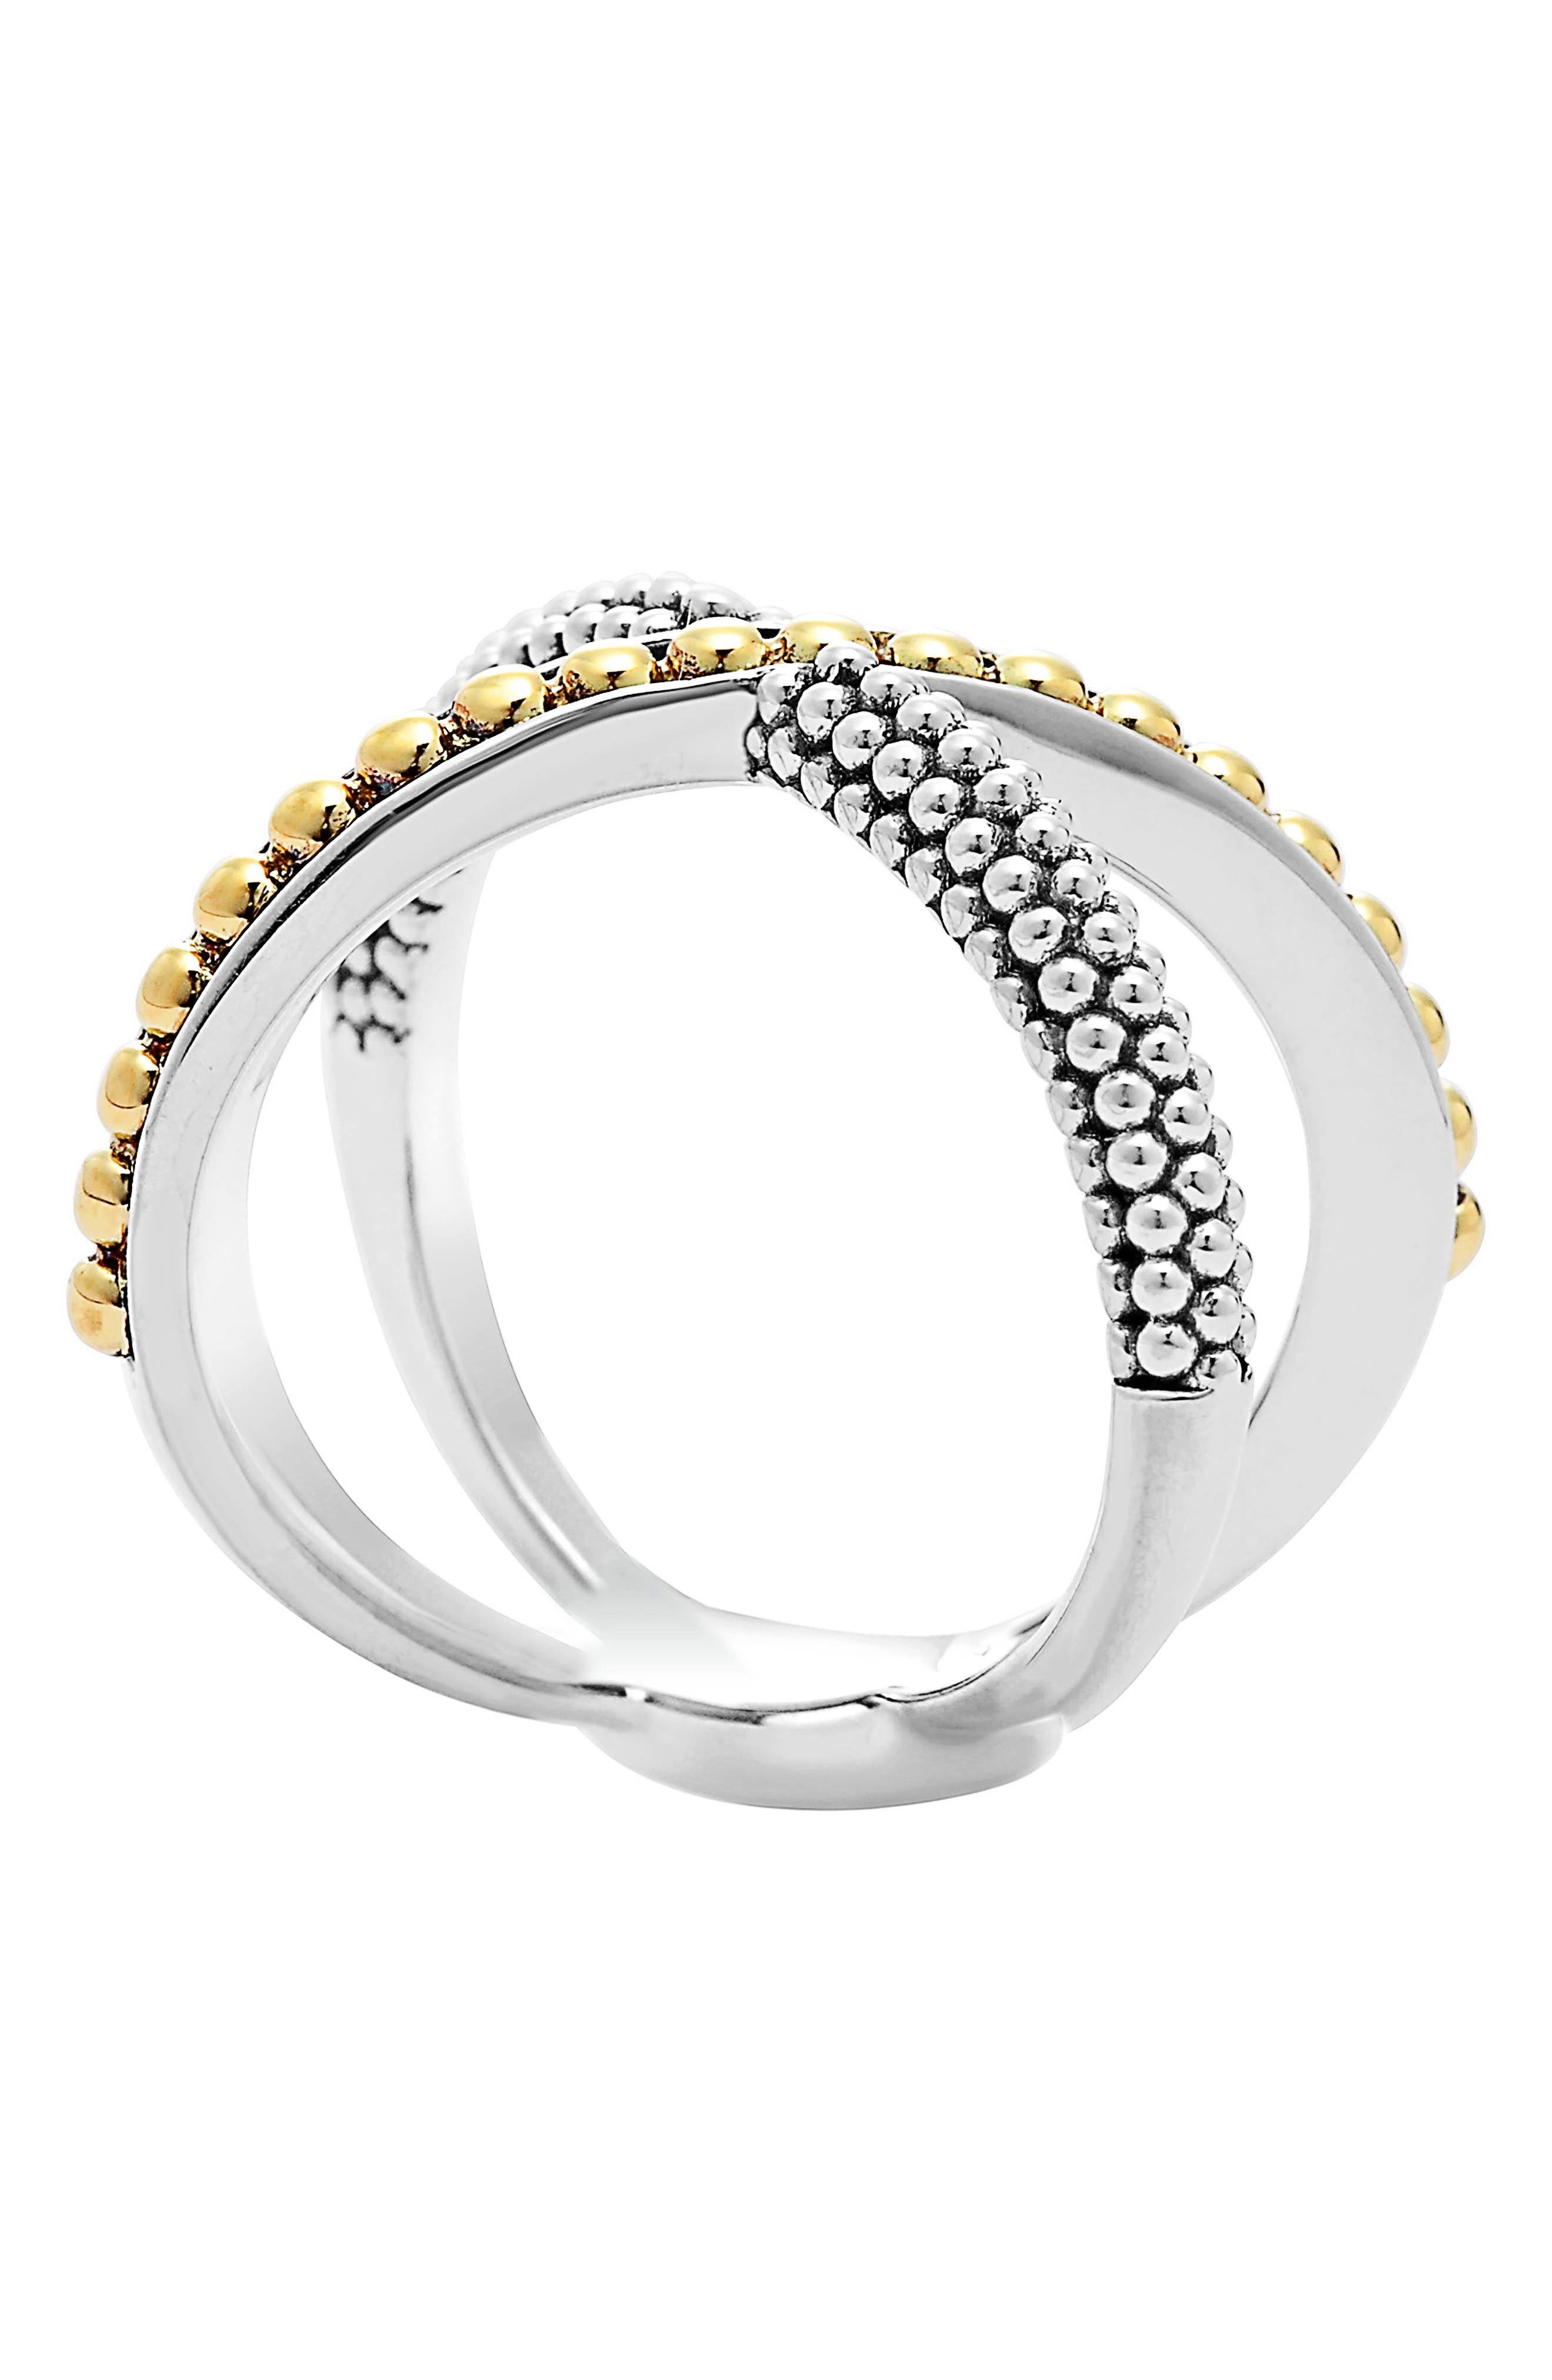 'Enso' Caviar Crossover Ring,                             Alternate thumbnail 2, color,                             SILVER/ GOLD